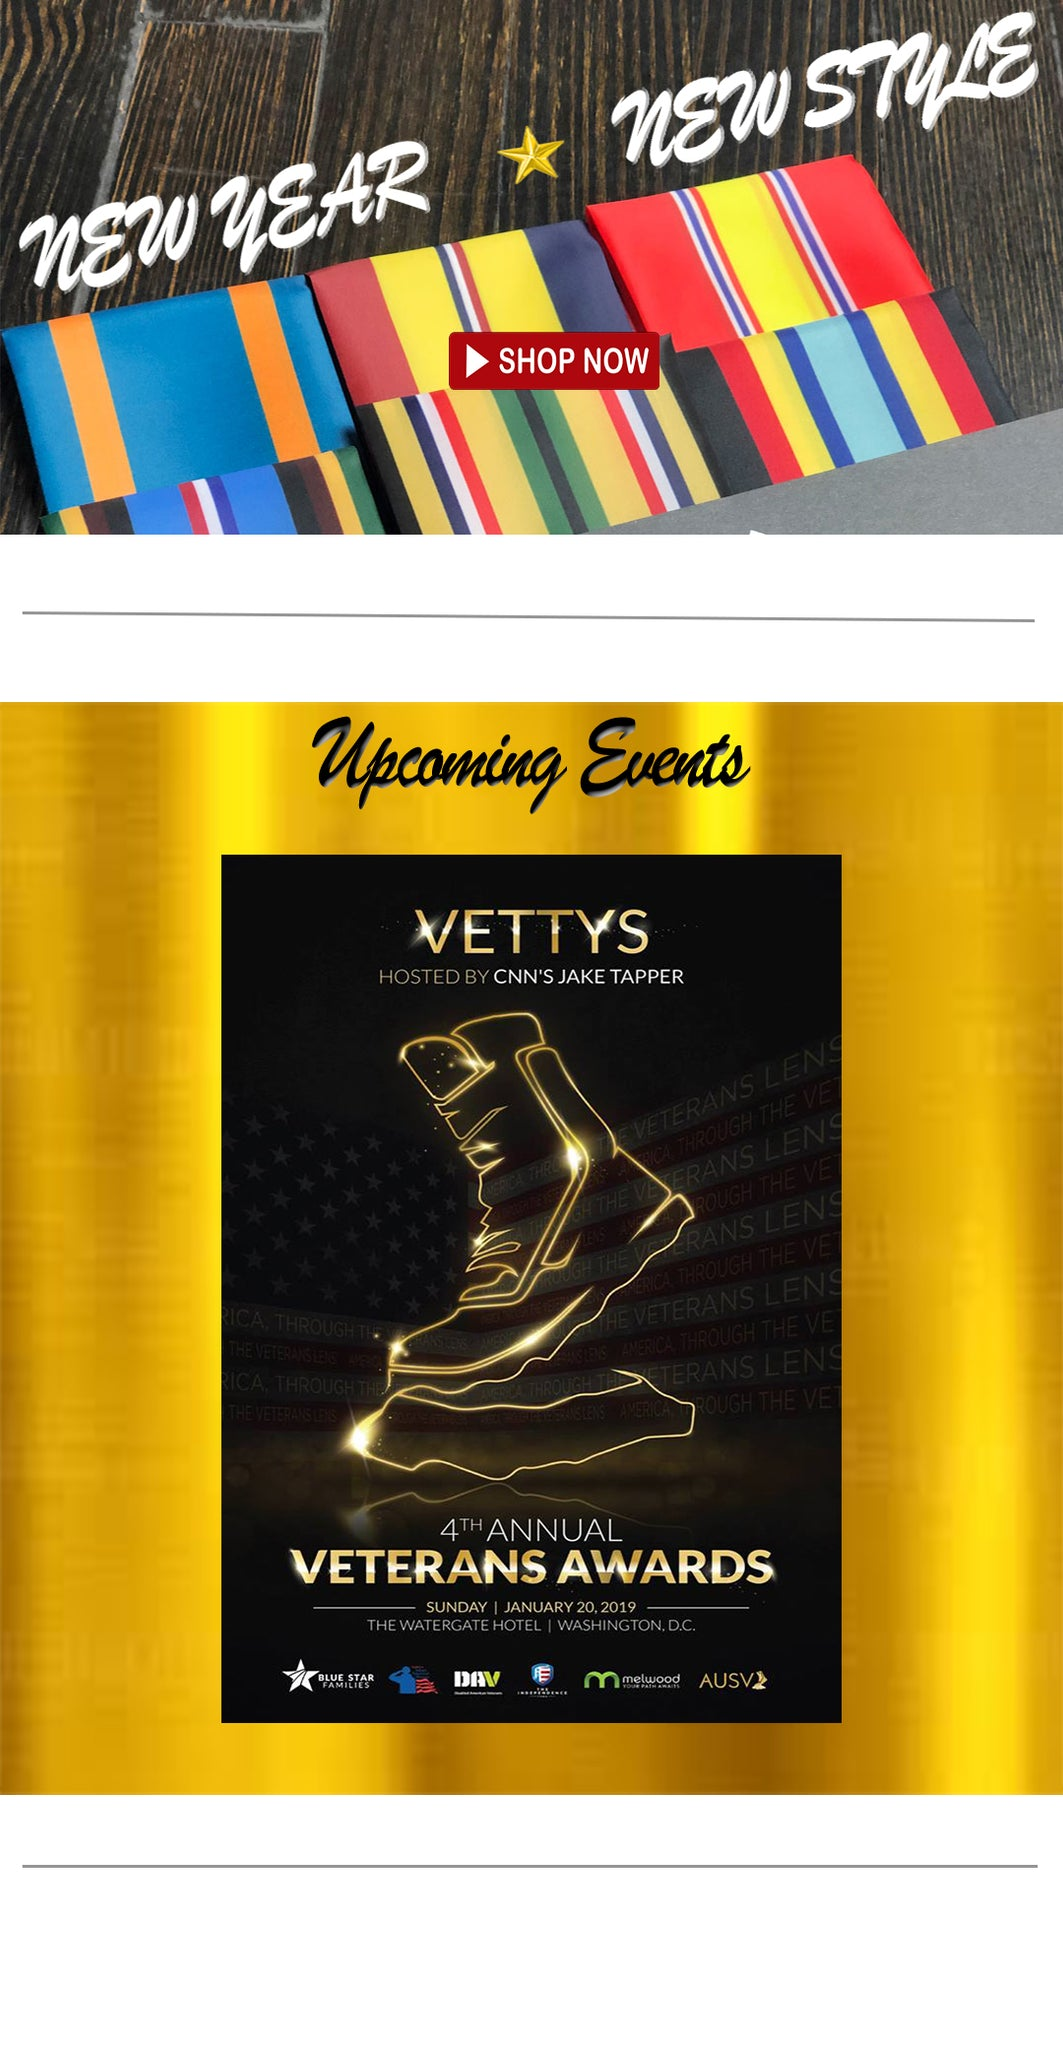 Vettys, Veteran Awards, Watergate Hotel, Washington DC